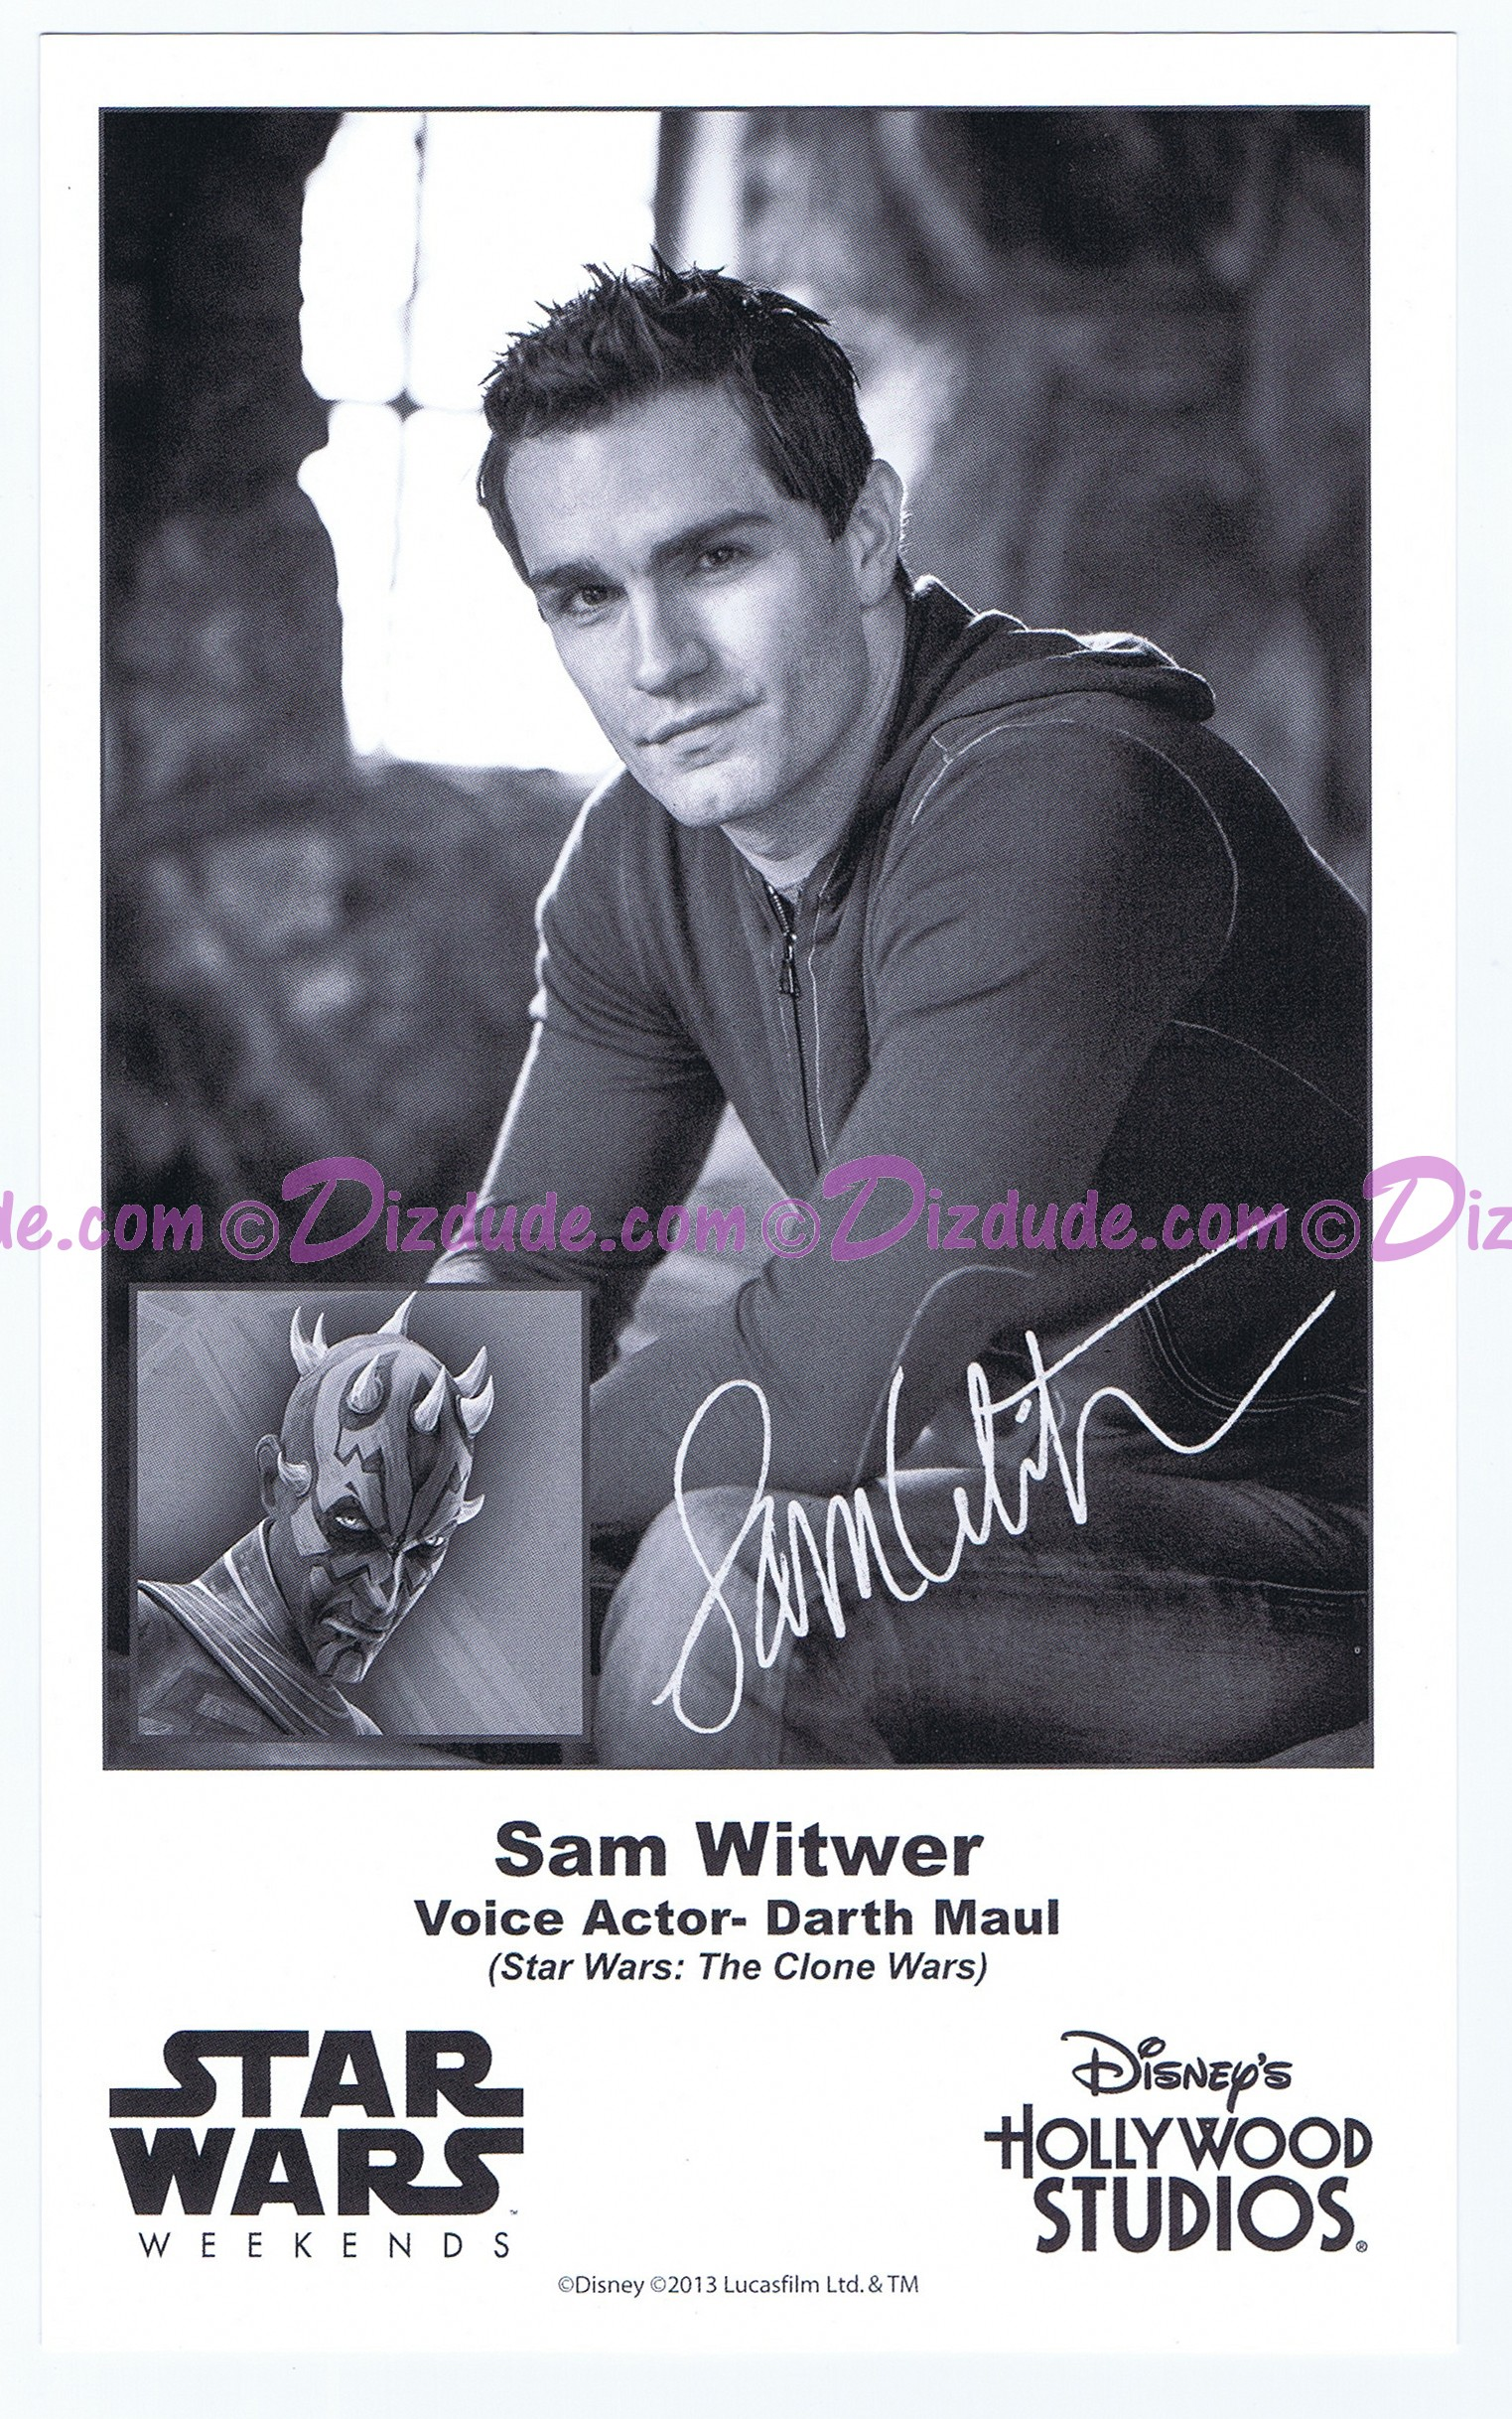 Sam Witwer the voice of Darth Maul Presigned Official Star Wars Weekends 2013 Celebrity Collector Photo